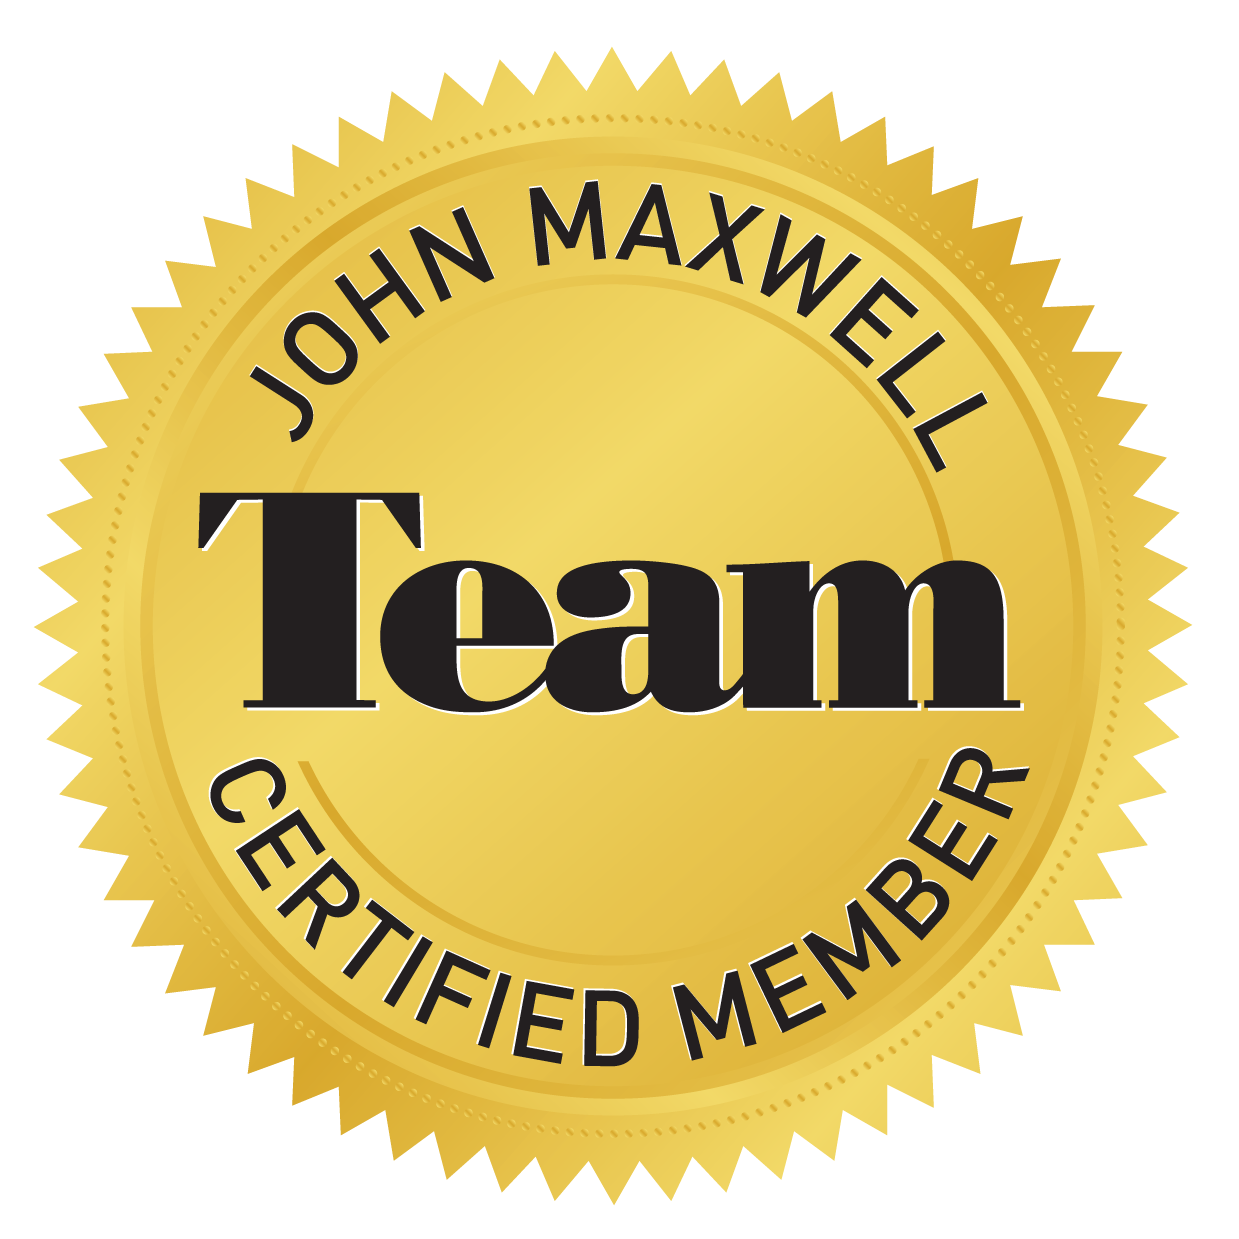 John Maxwell Certified Trainer, Speaker, Coach